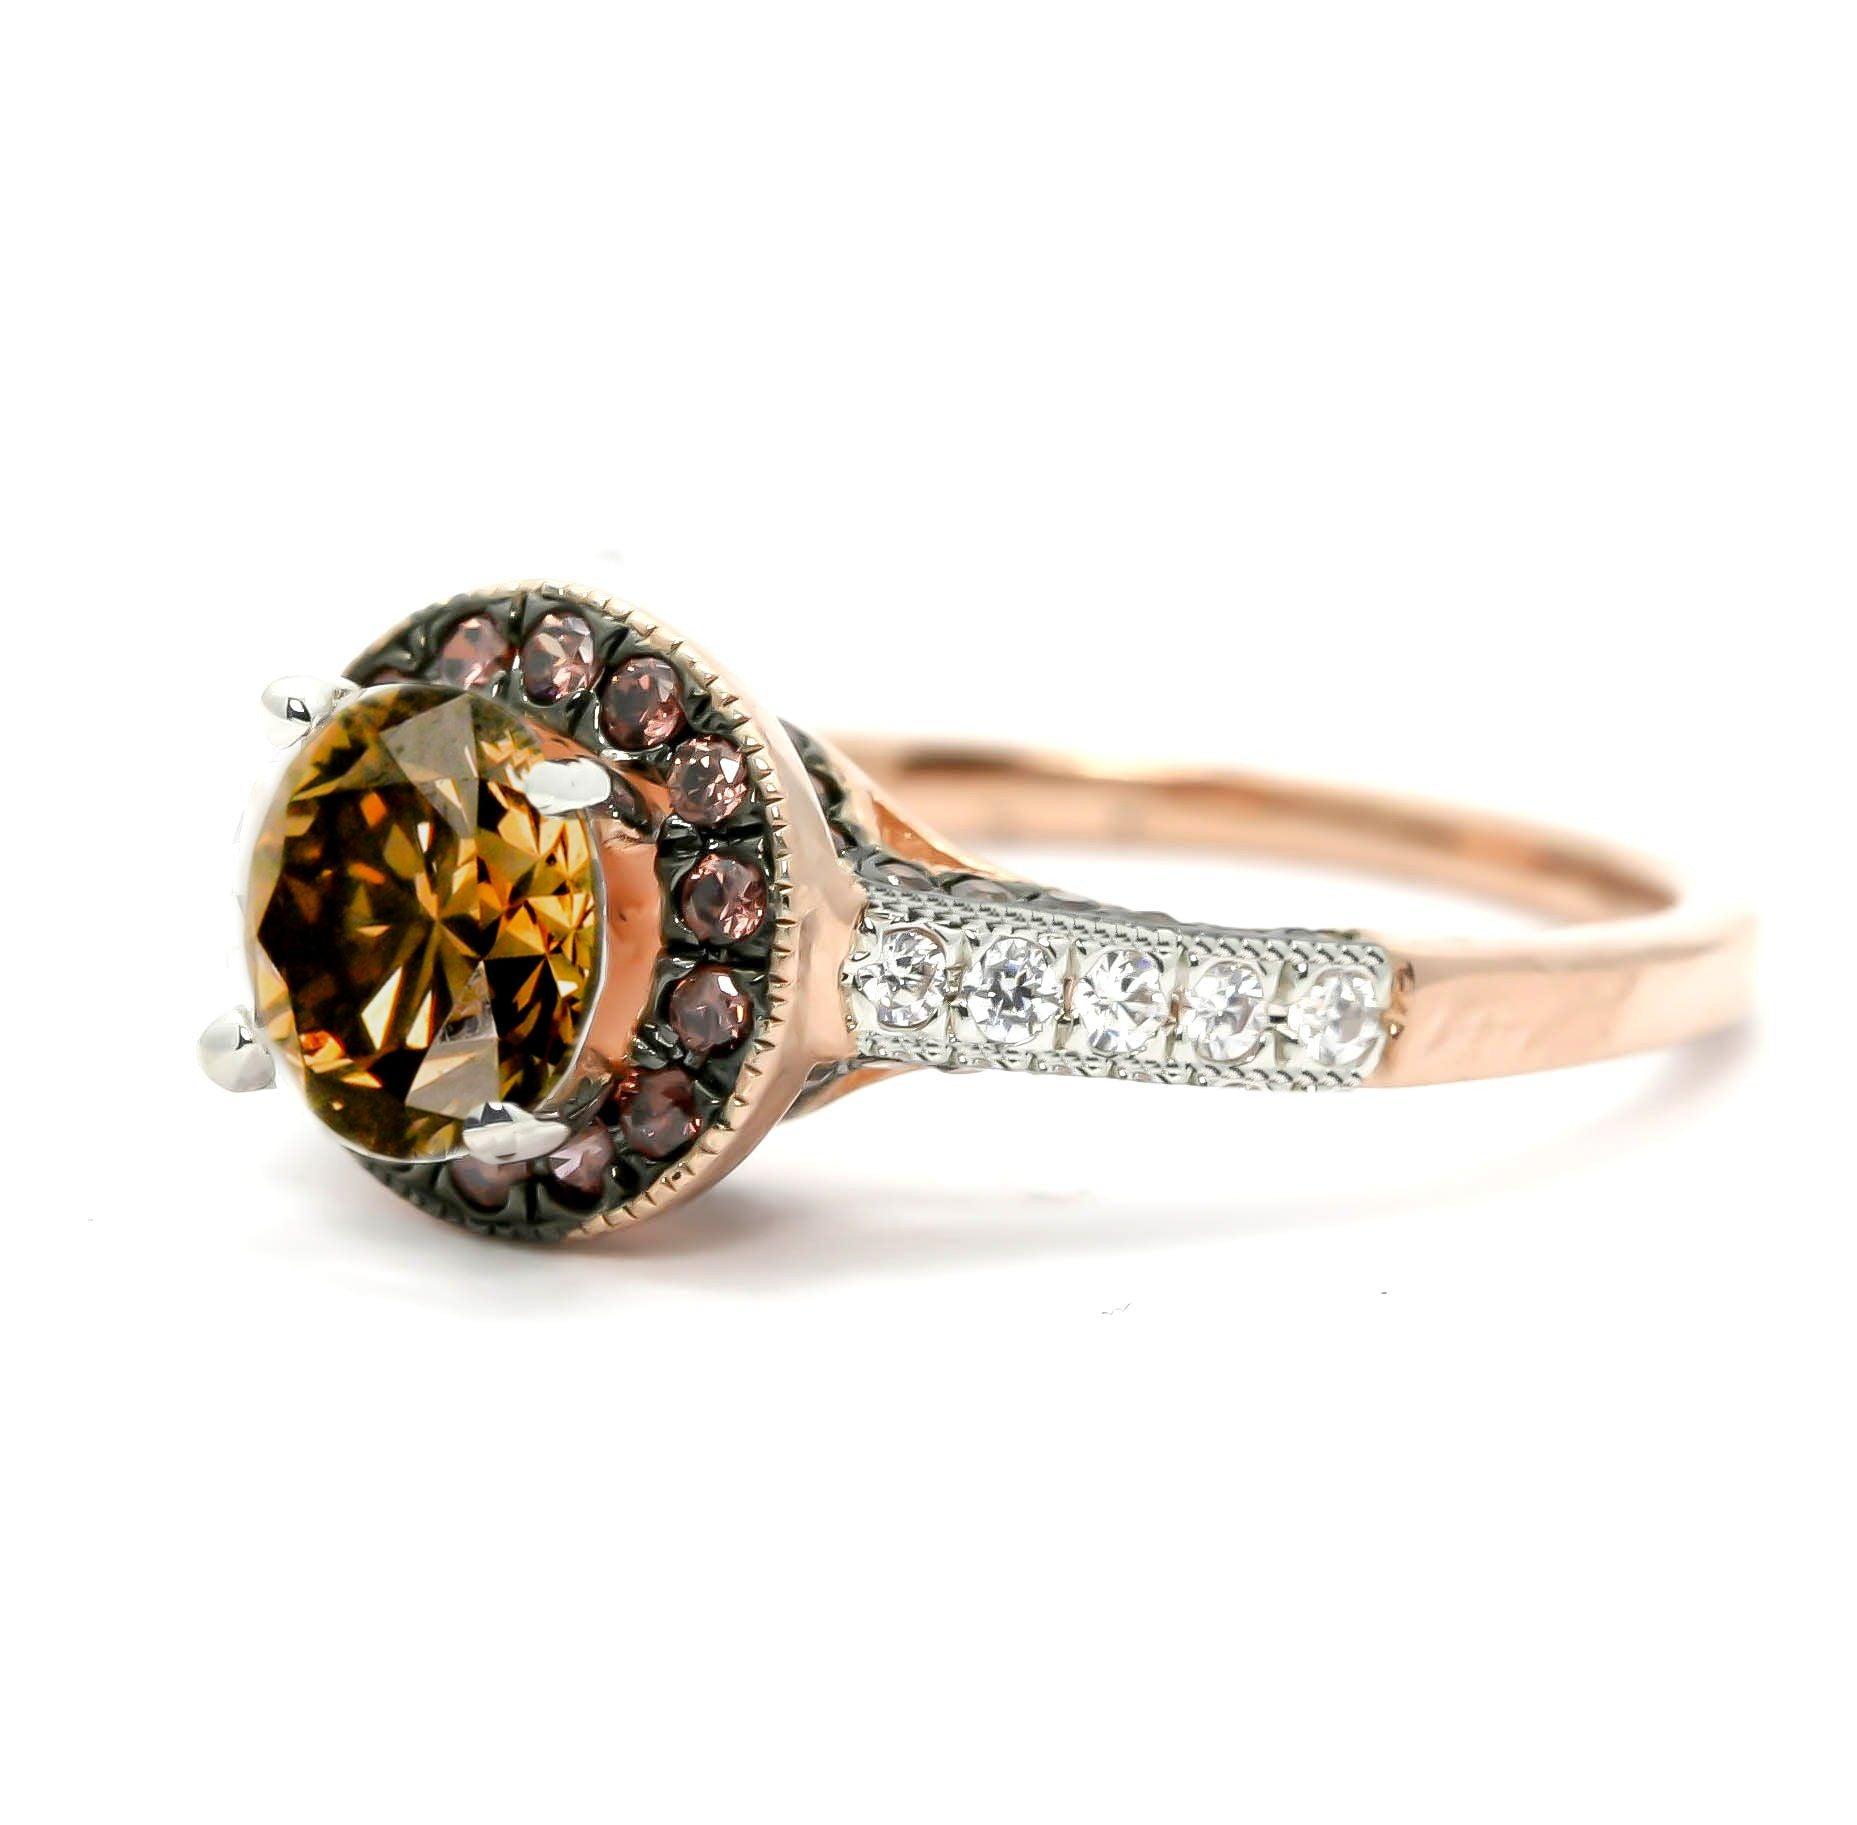 Chocolate Brown Diamond Engagement Ring, Unique 1 Carat Floating Halo Rose Gold, White & Chocolate Color Brown Diamonds - BD94641